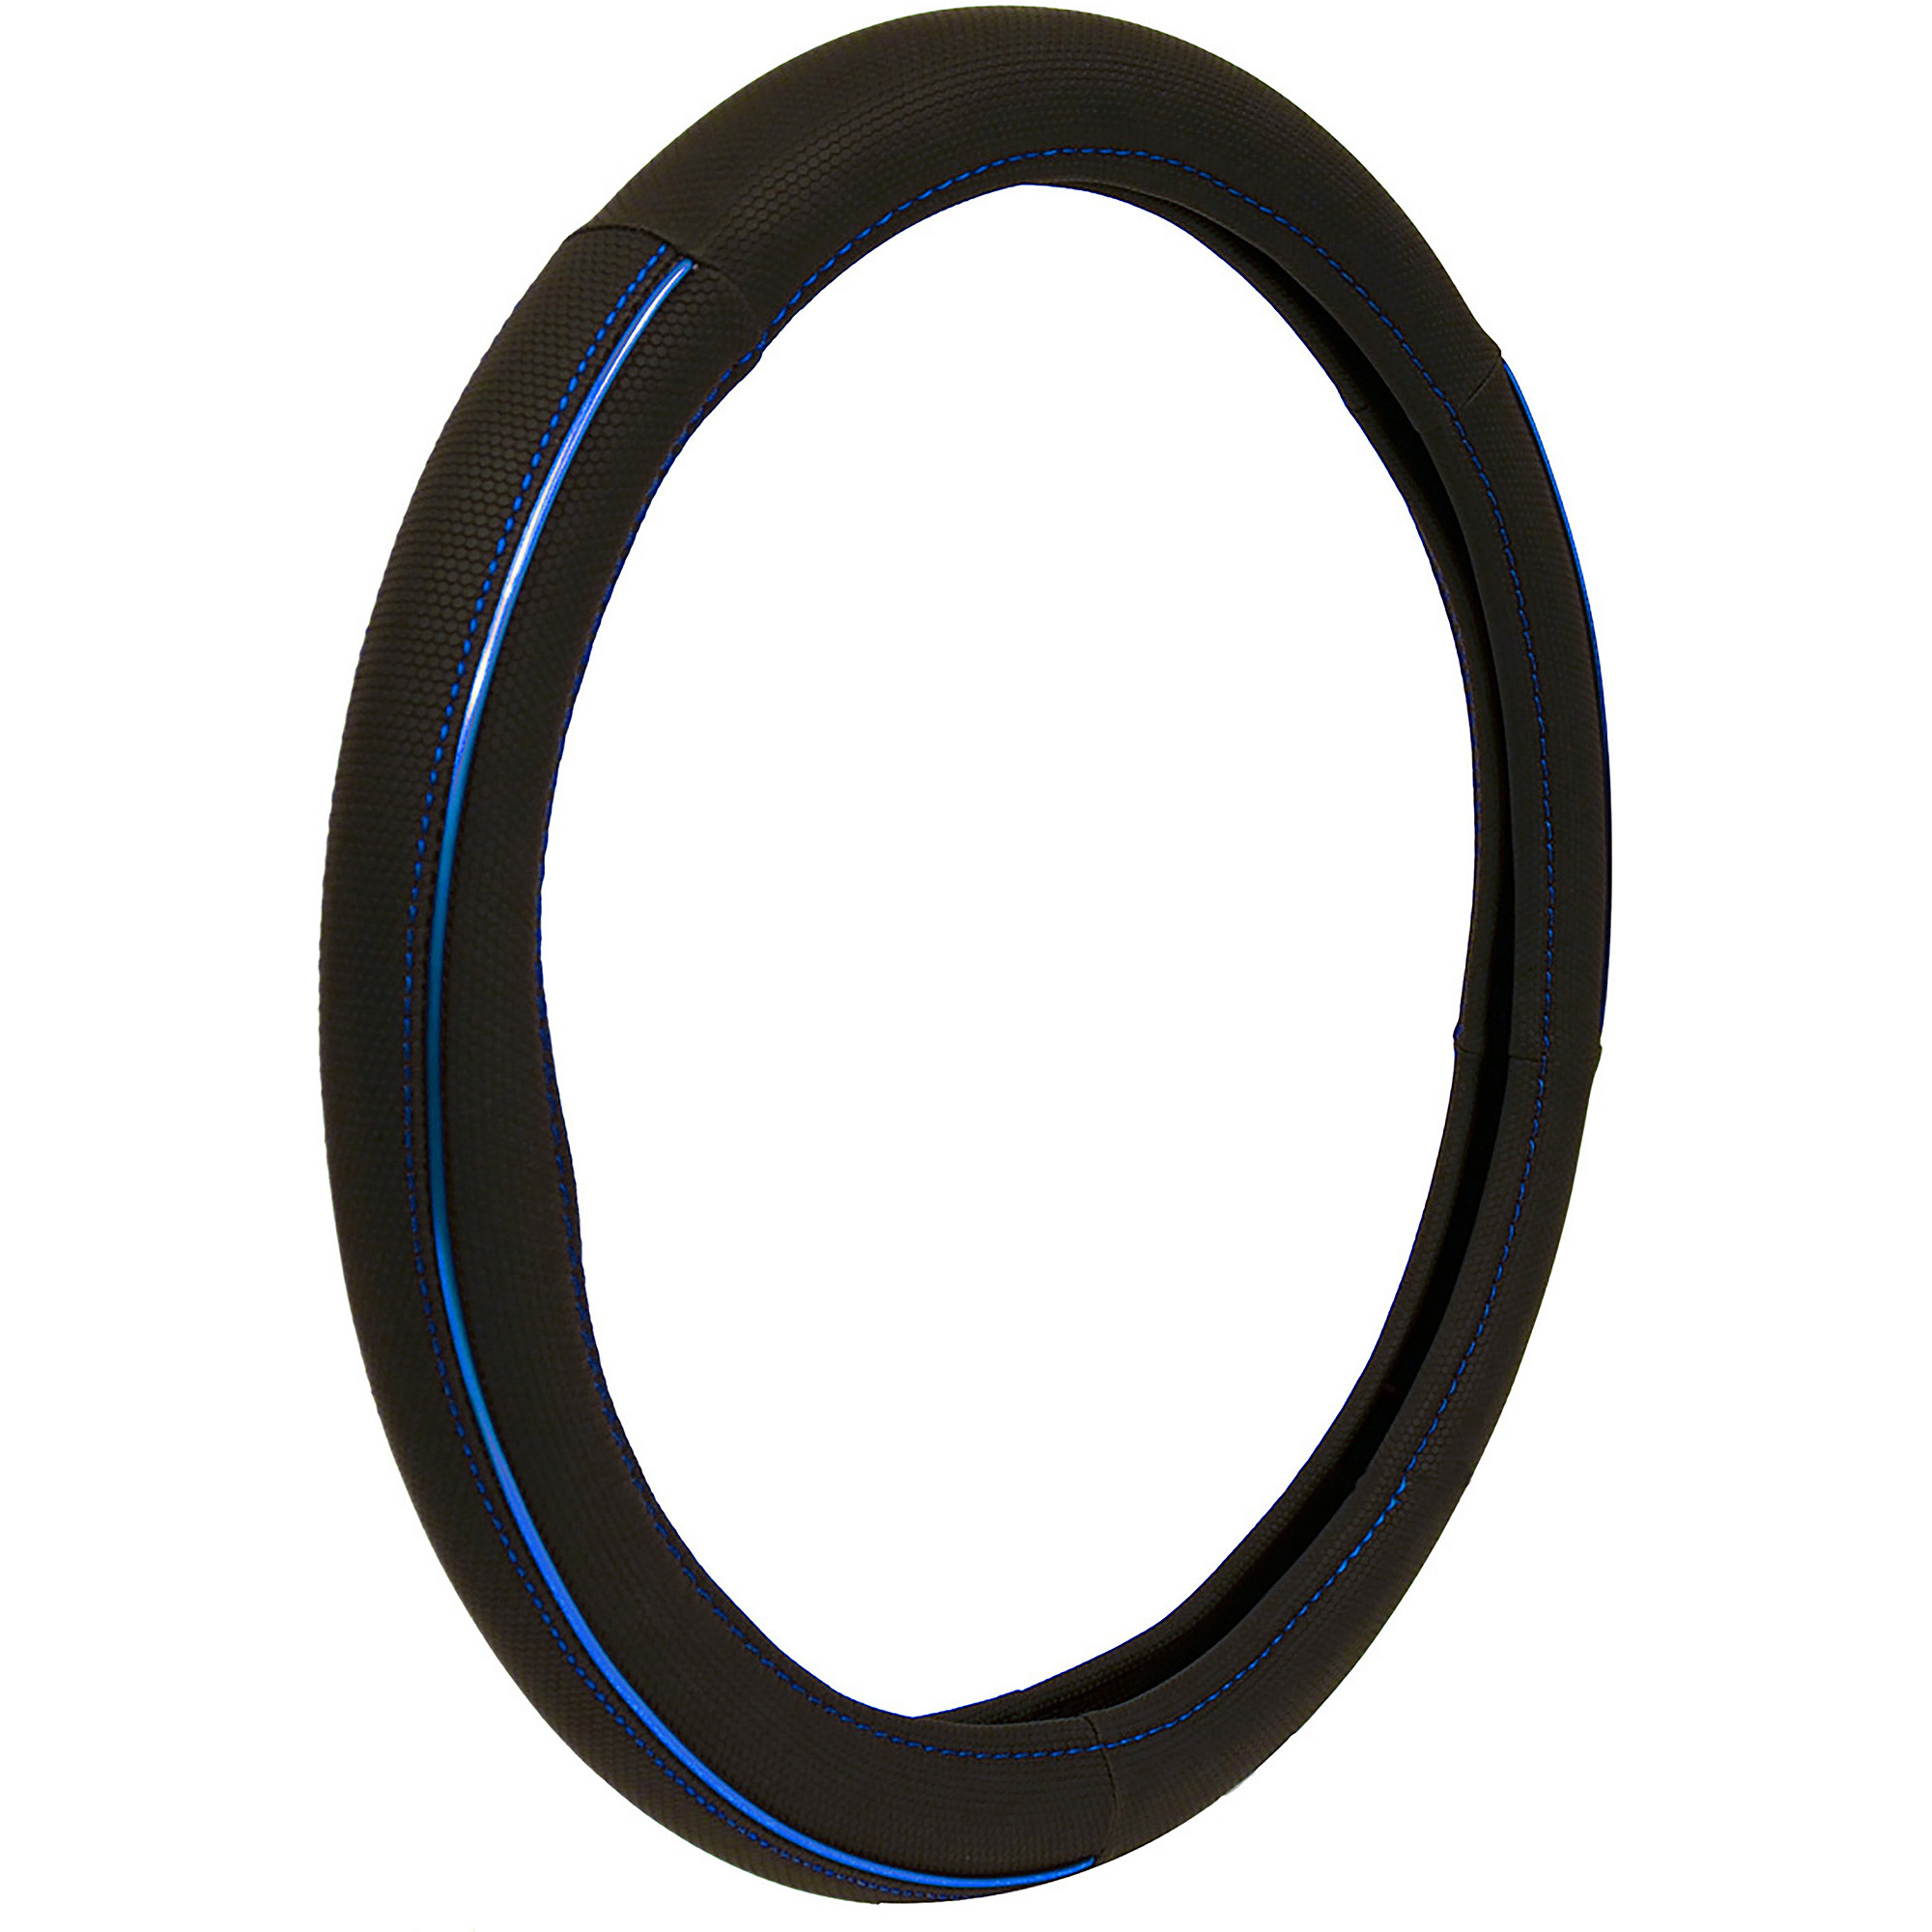 Auto Drive Steering Wheel Cover, Sport Blue